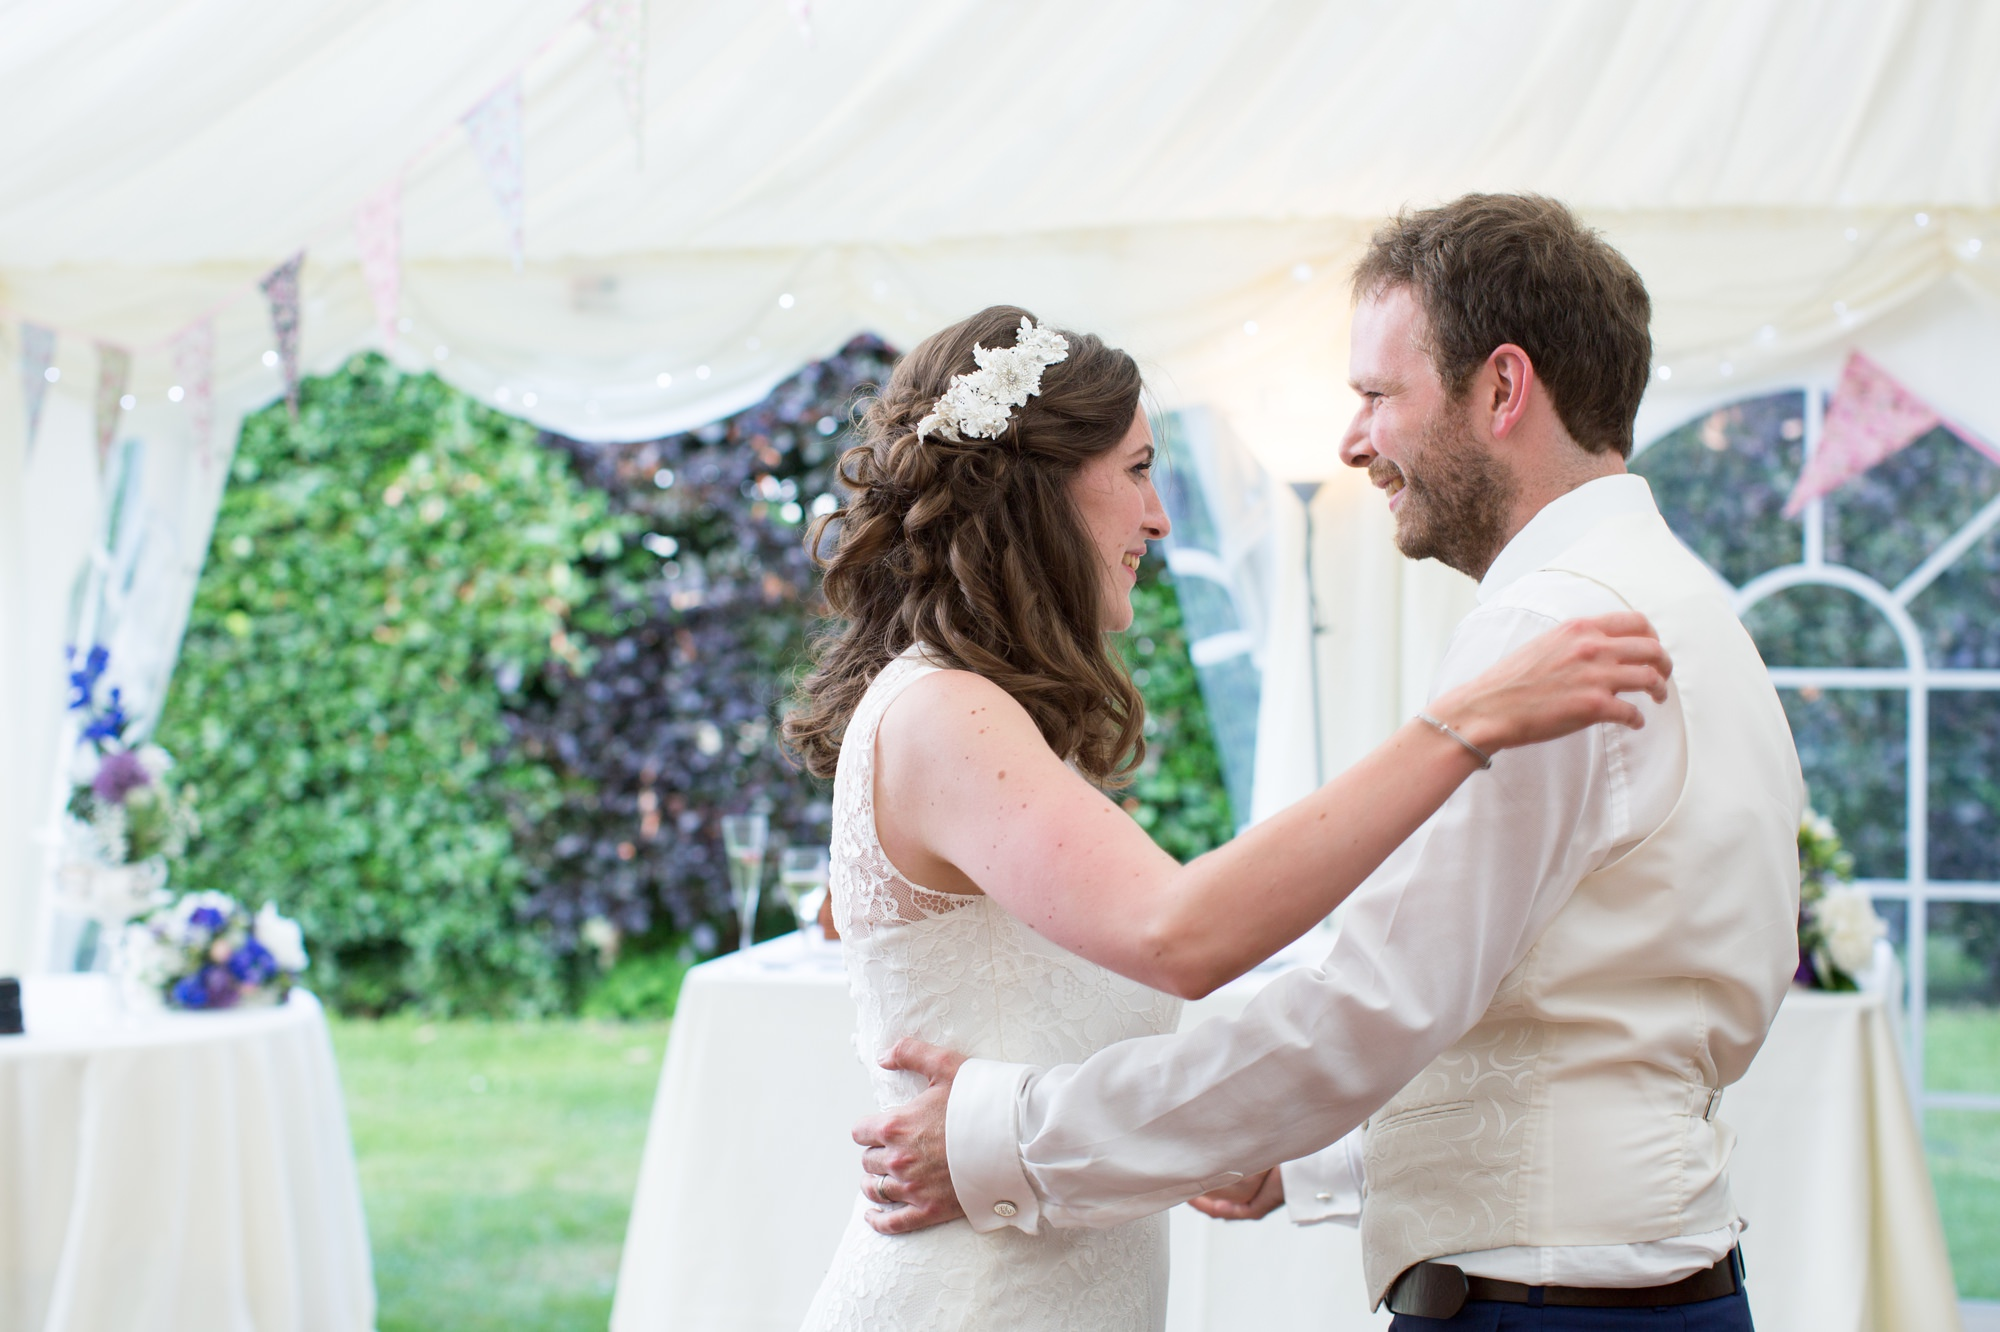 country-wedding-photography-17